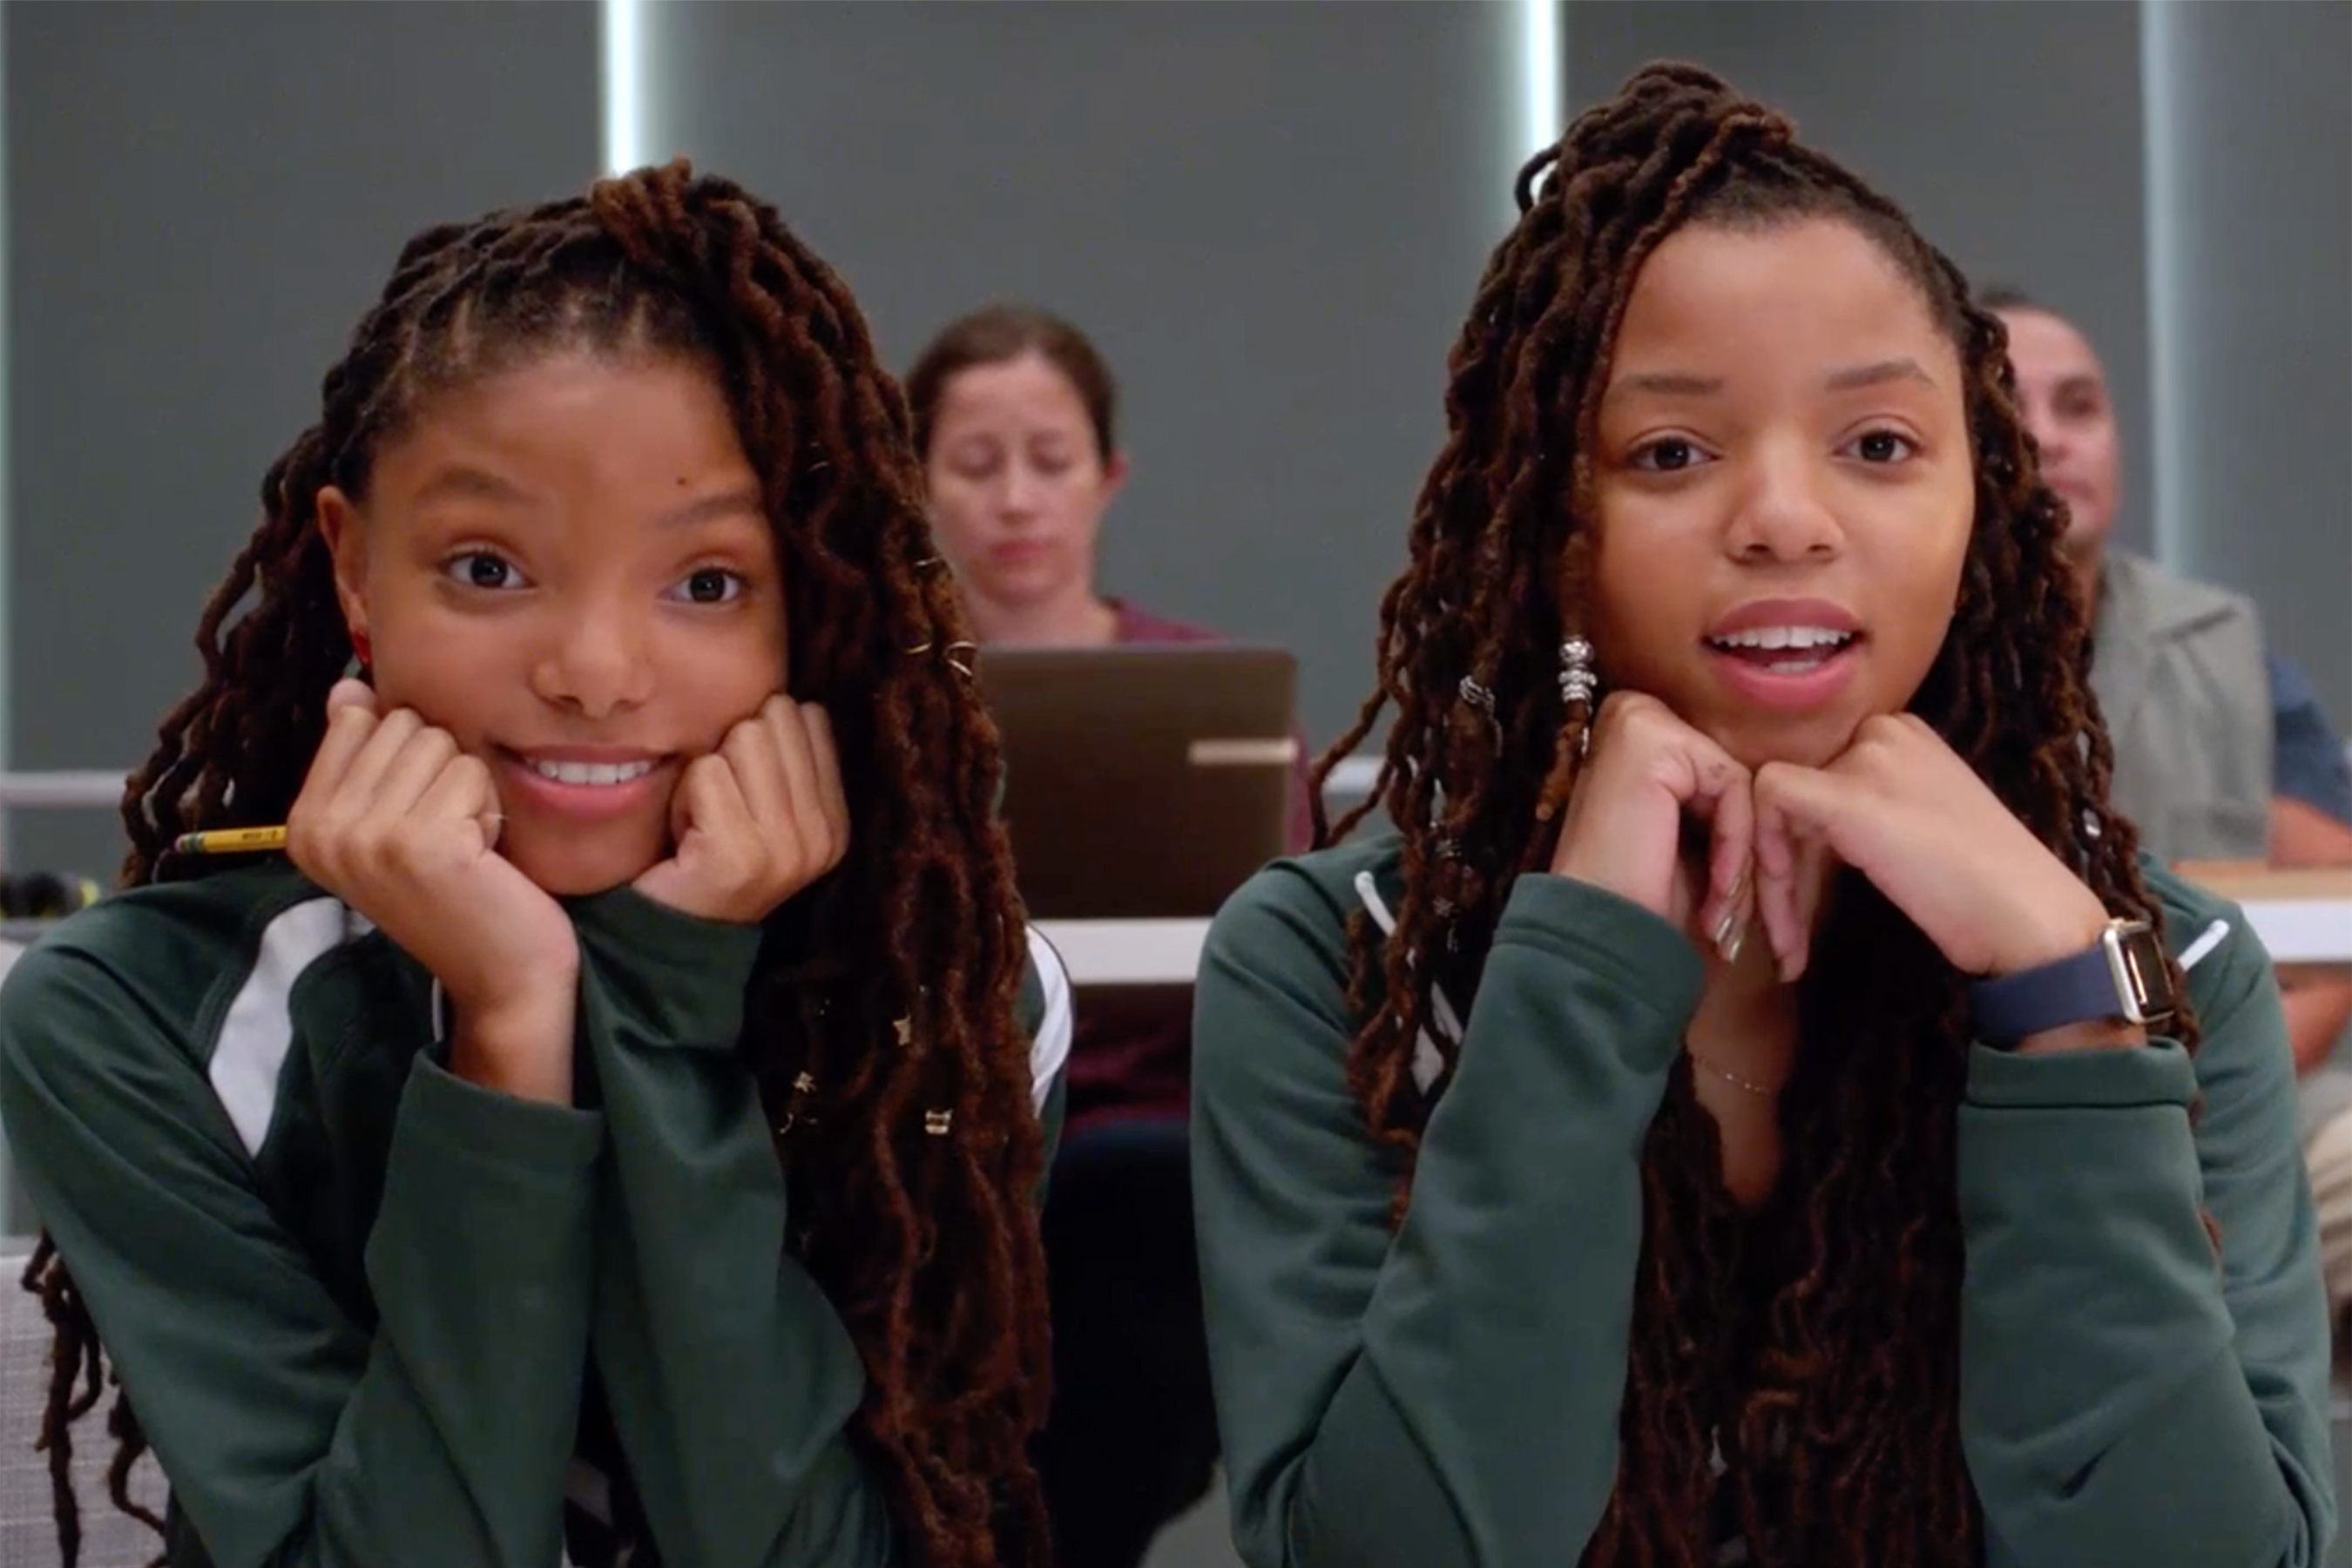 On The Kids Are Alright Chloe X Halle Are The Voices Of